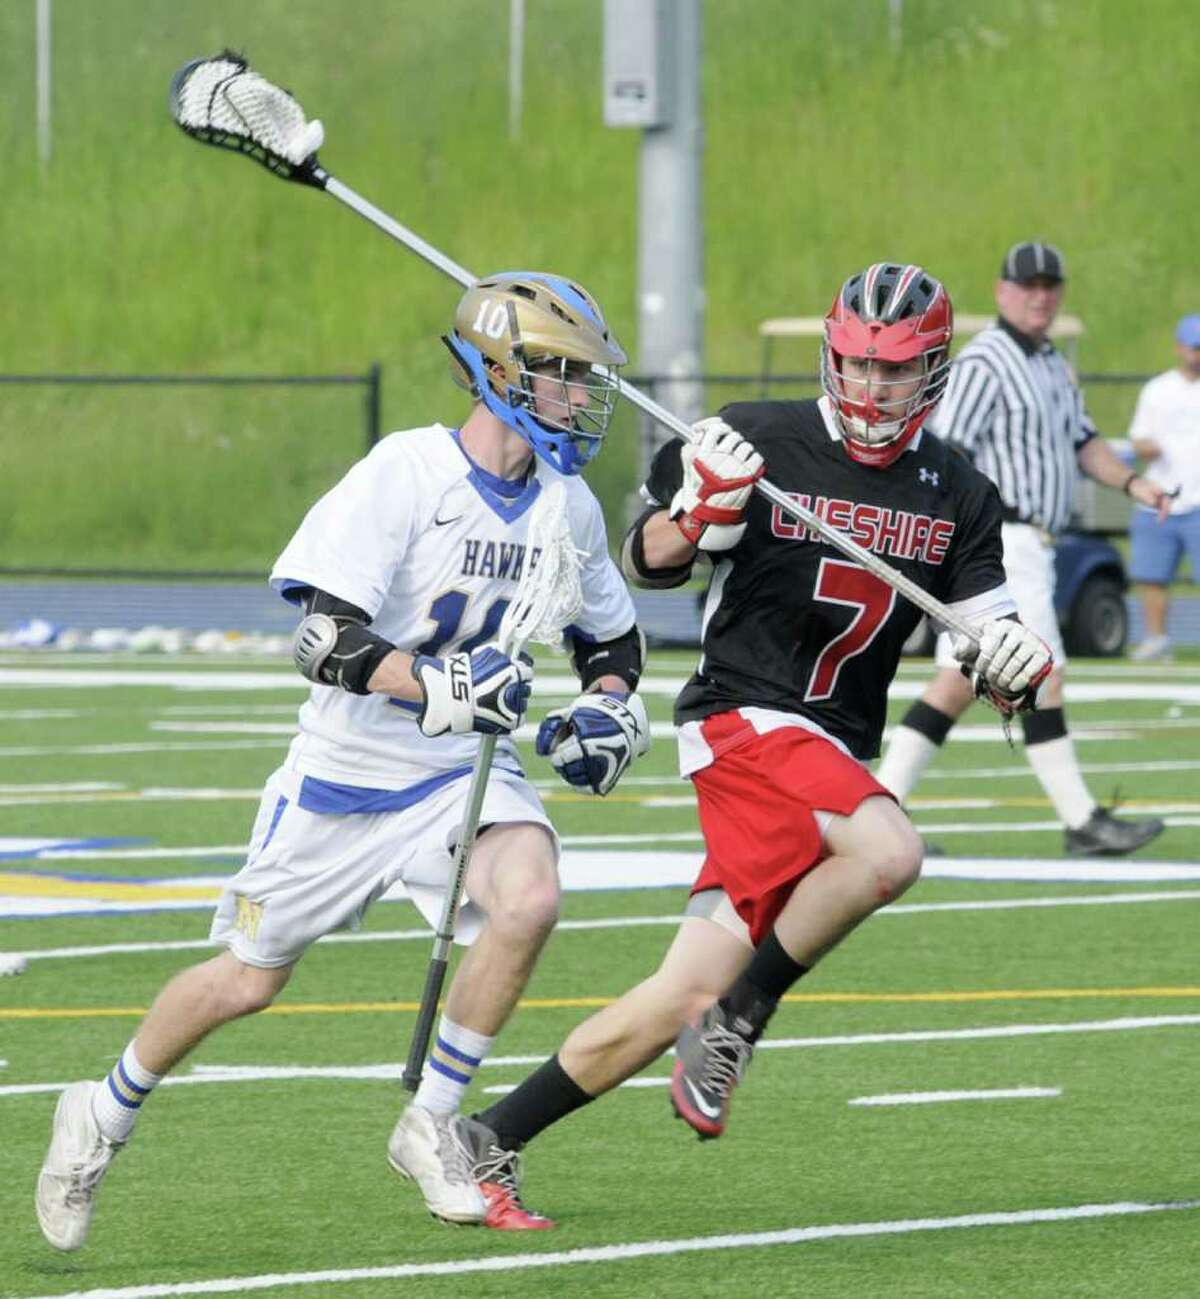 Tim Murphy, left, #10, of Newtown High School, runs up field, against , Nick Palladino, #7, of Cheshire, during a SWC first round Class L boys lacrosse game, against Cheshire High School, at Newtown, on Wednesday, June 1, 2011.